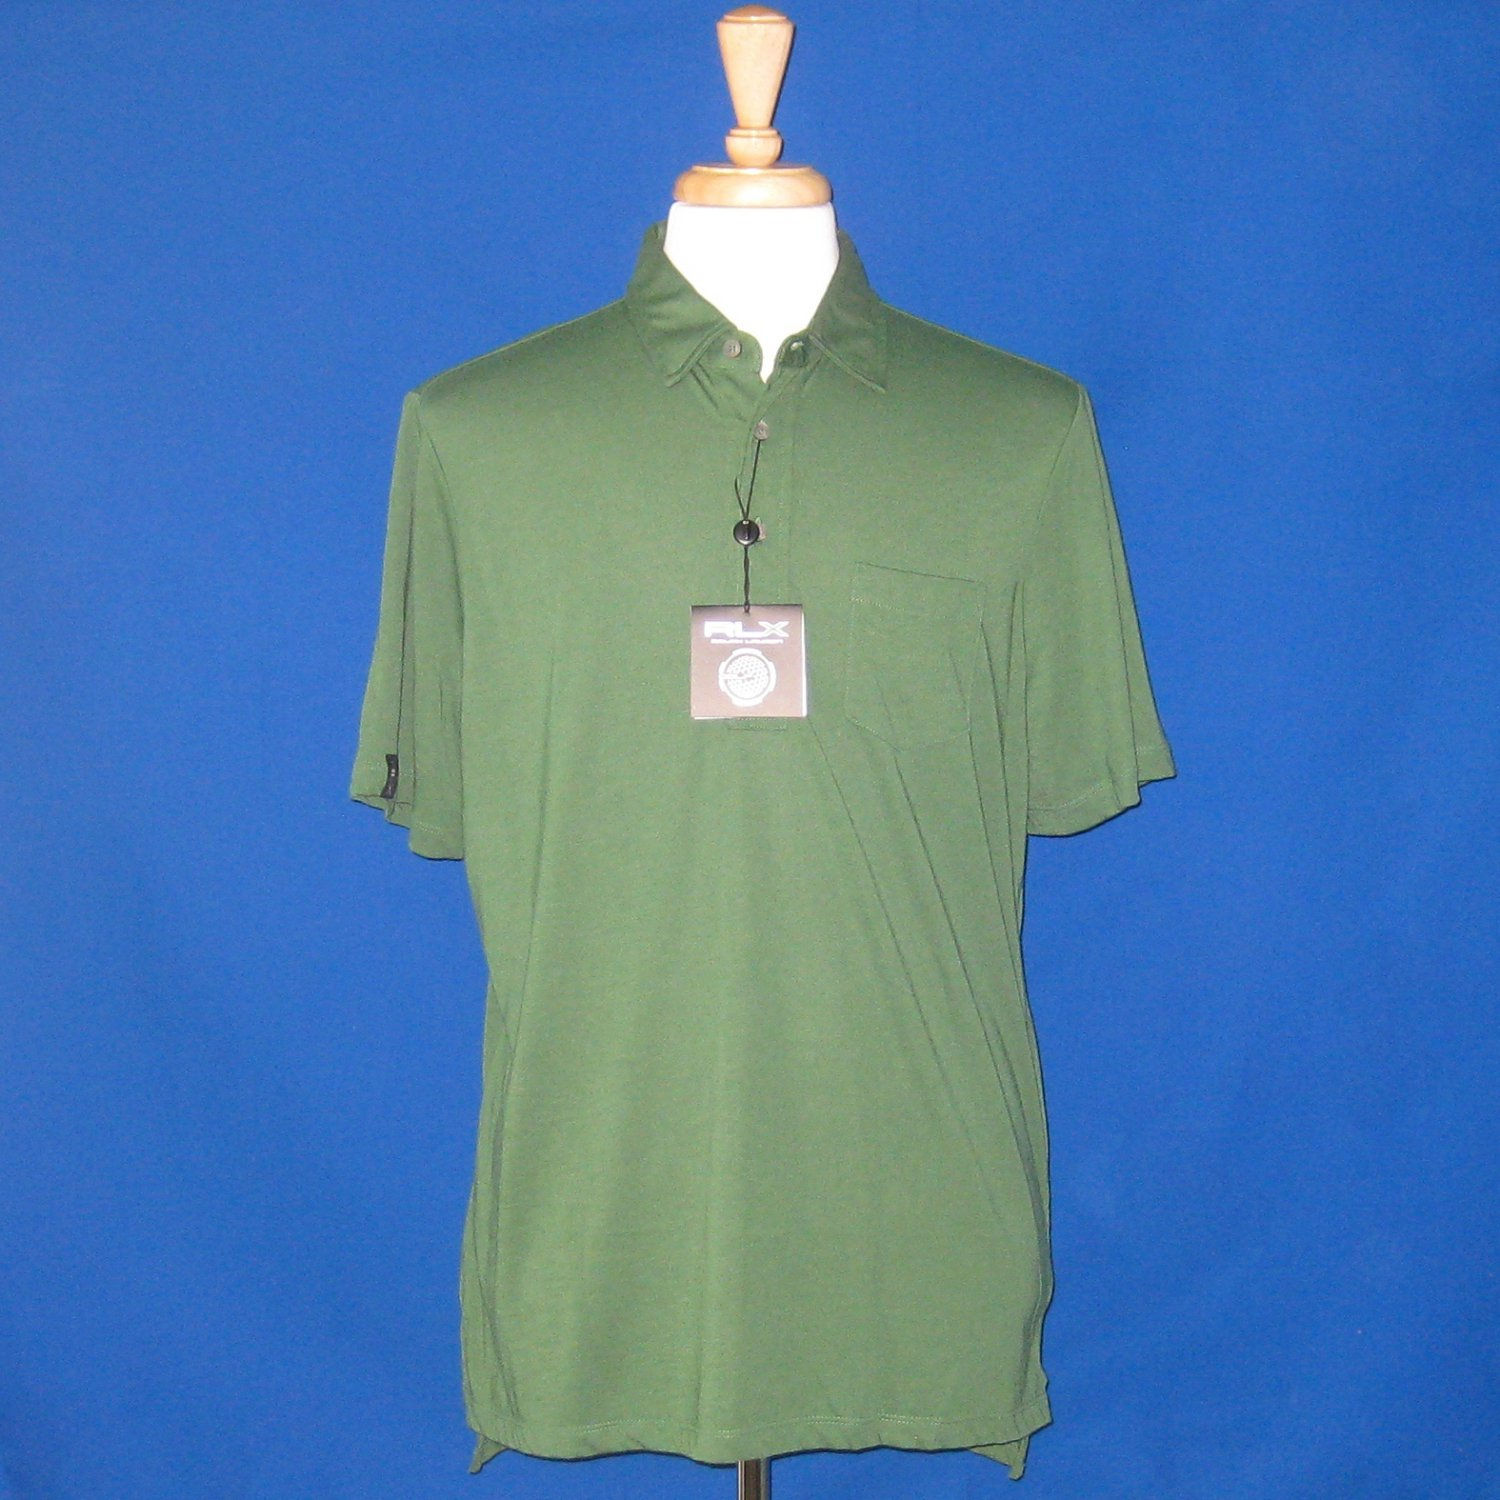 NWT Ralph Lauren RLX Green Cotton Blend Polo Shirt - L